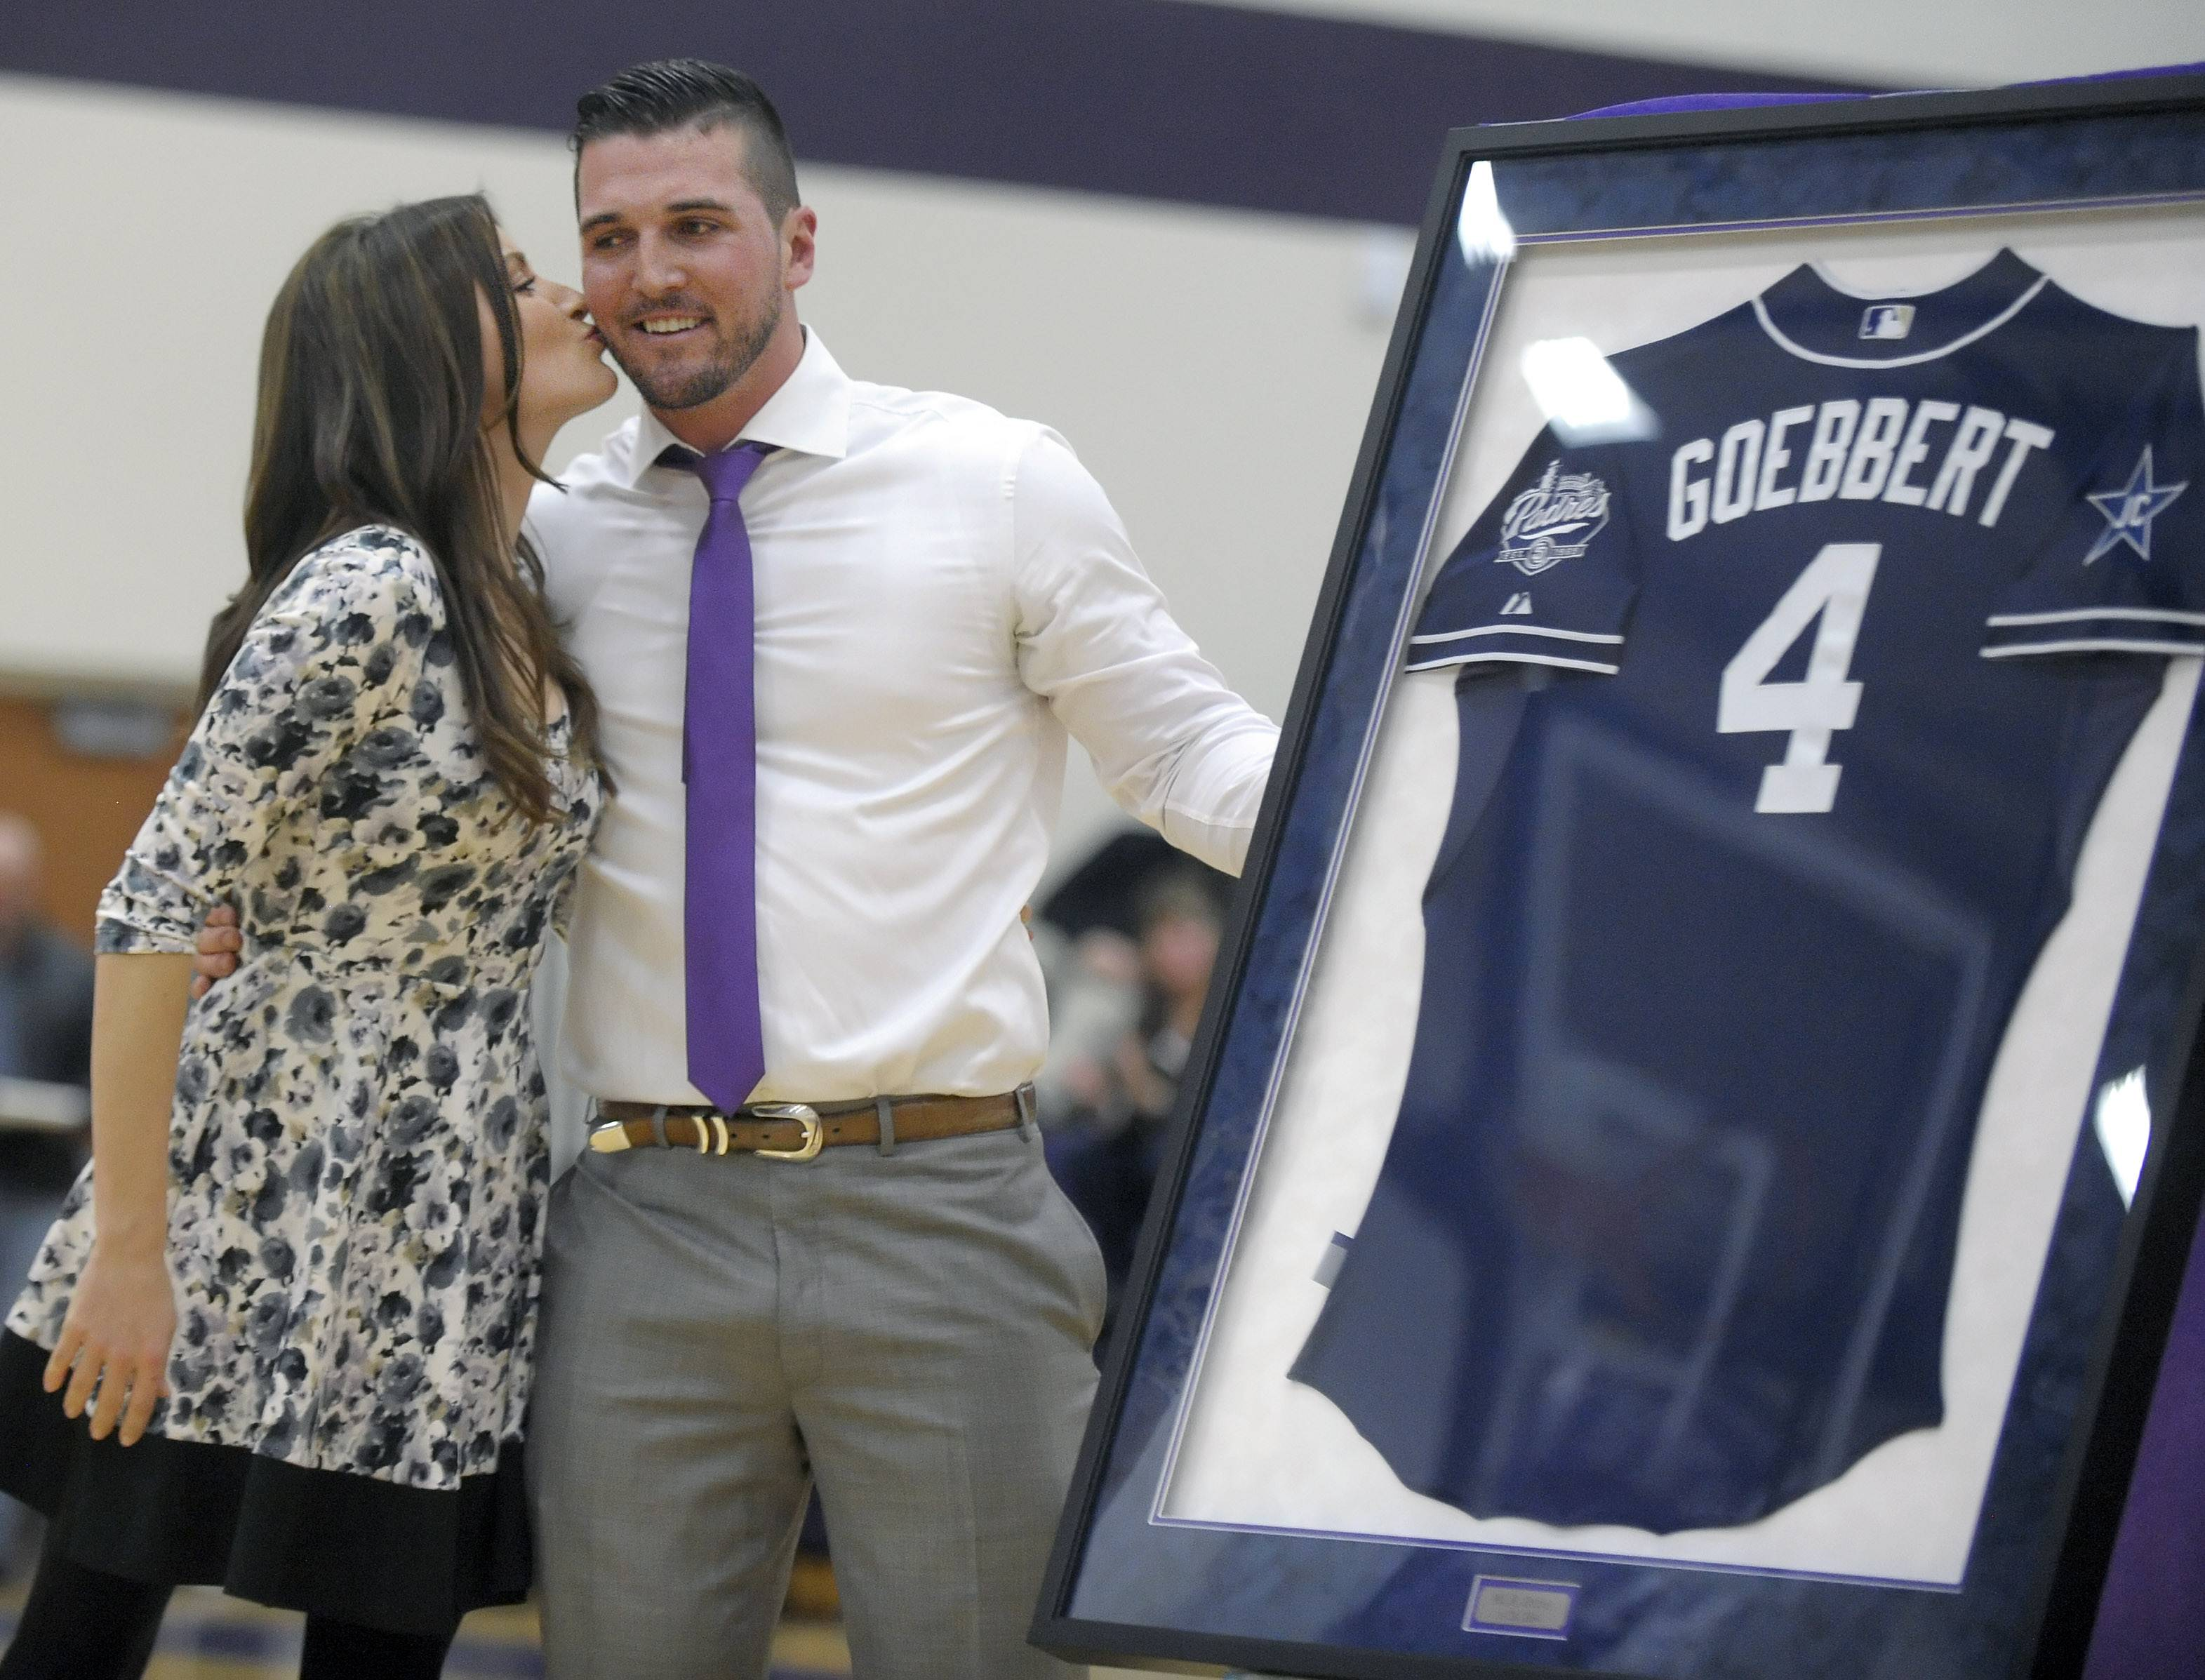 Hampshire High School graduate Jake Goebbert of Pingree Grove gets a peck on the cheek from his wife, Heather, after unveiling his San Diego Padres baseball jersey before the start of the boys varsity basketball game Saturday.